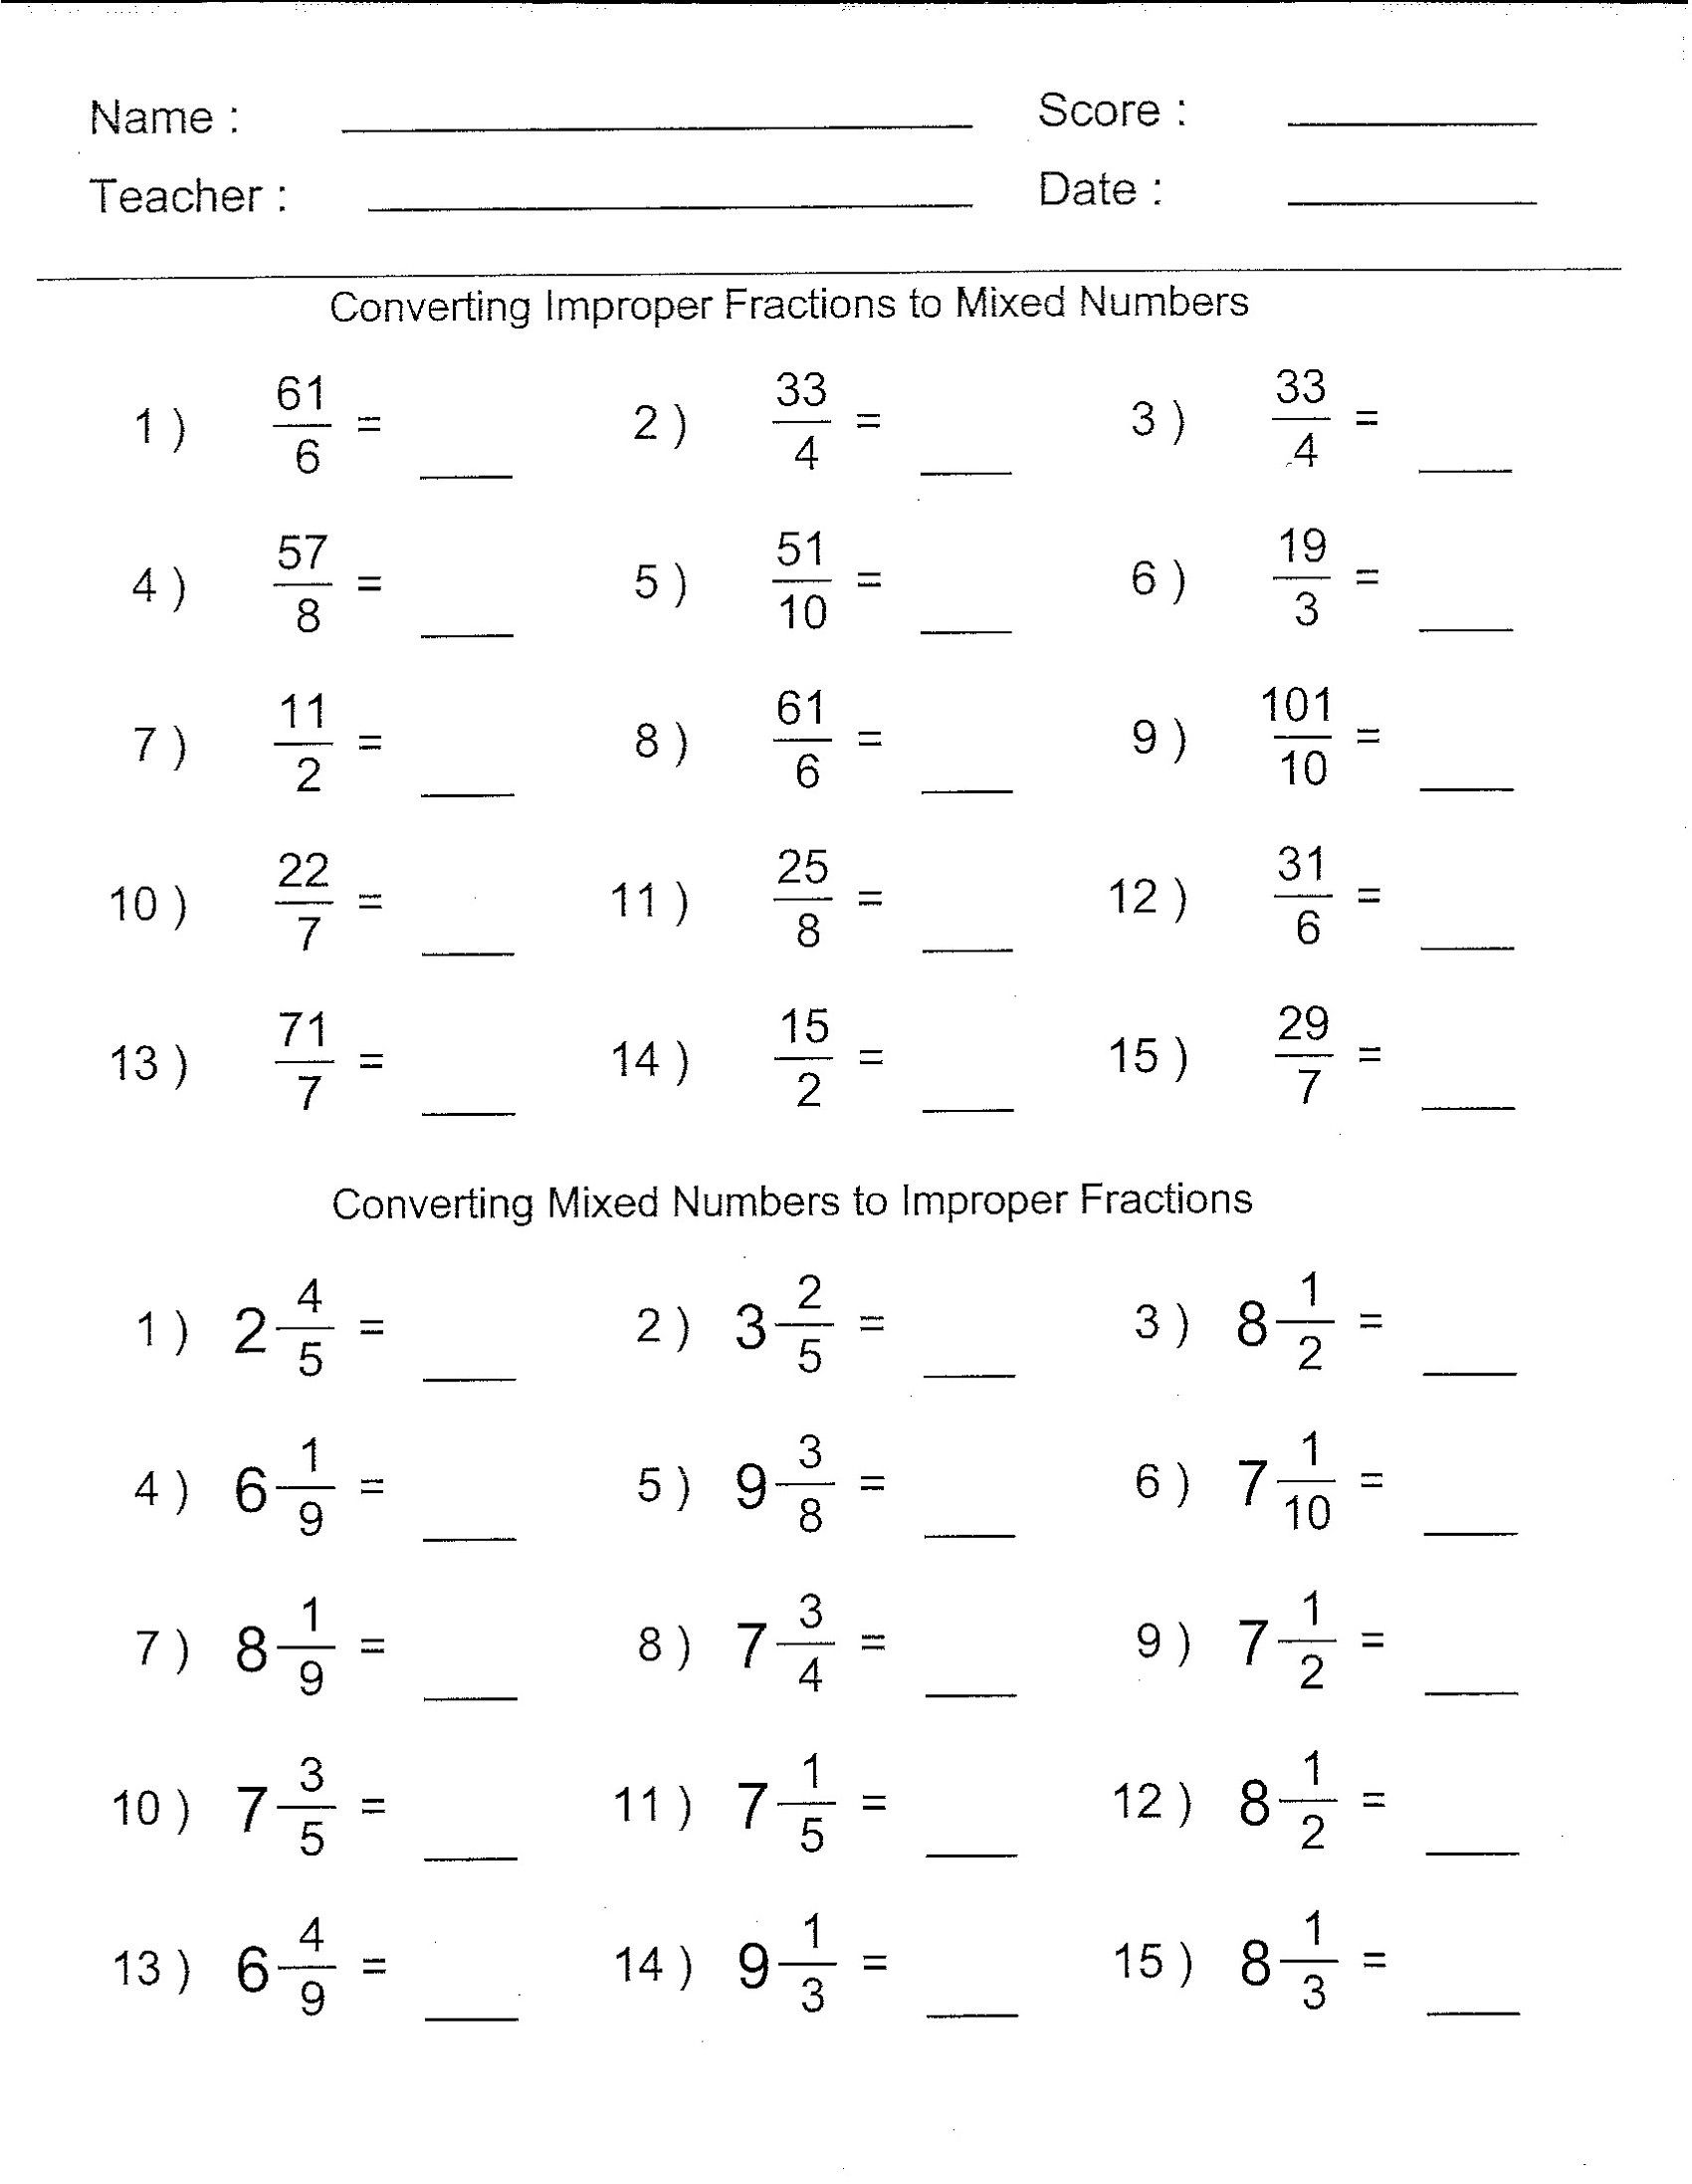 7 Official Math Worksheets For Grade 6 In